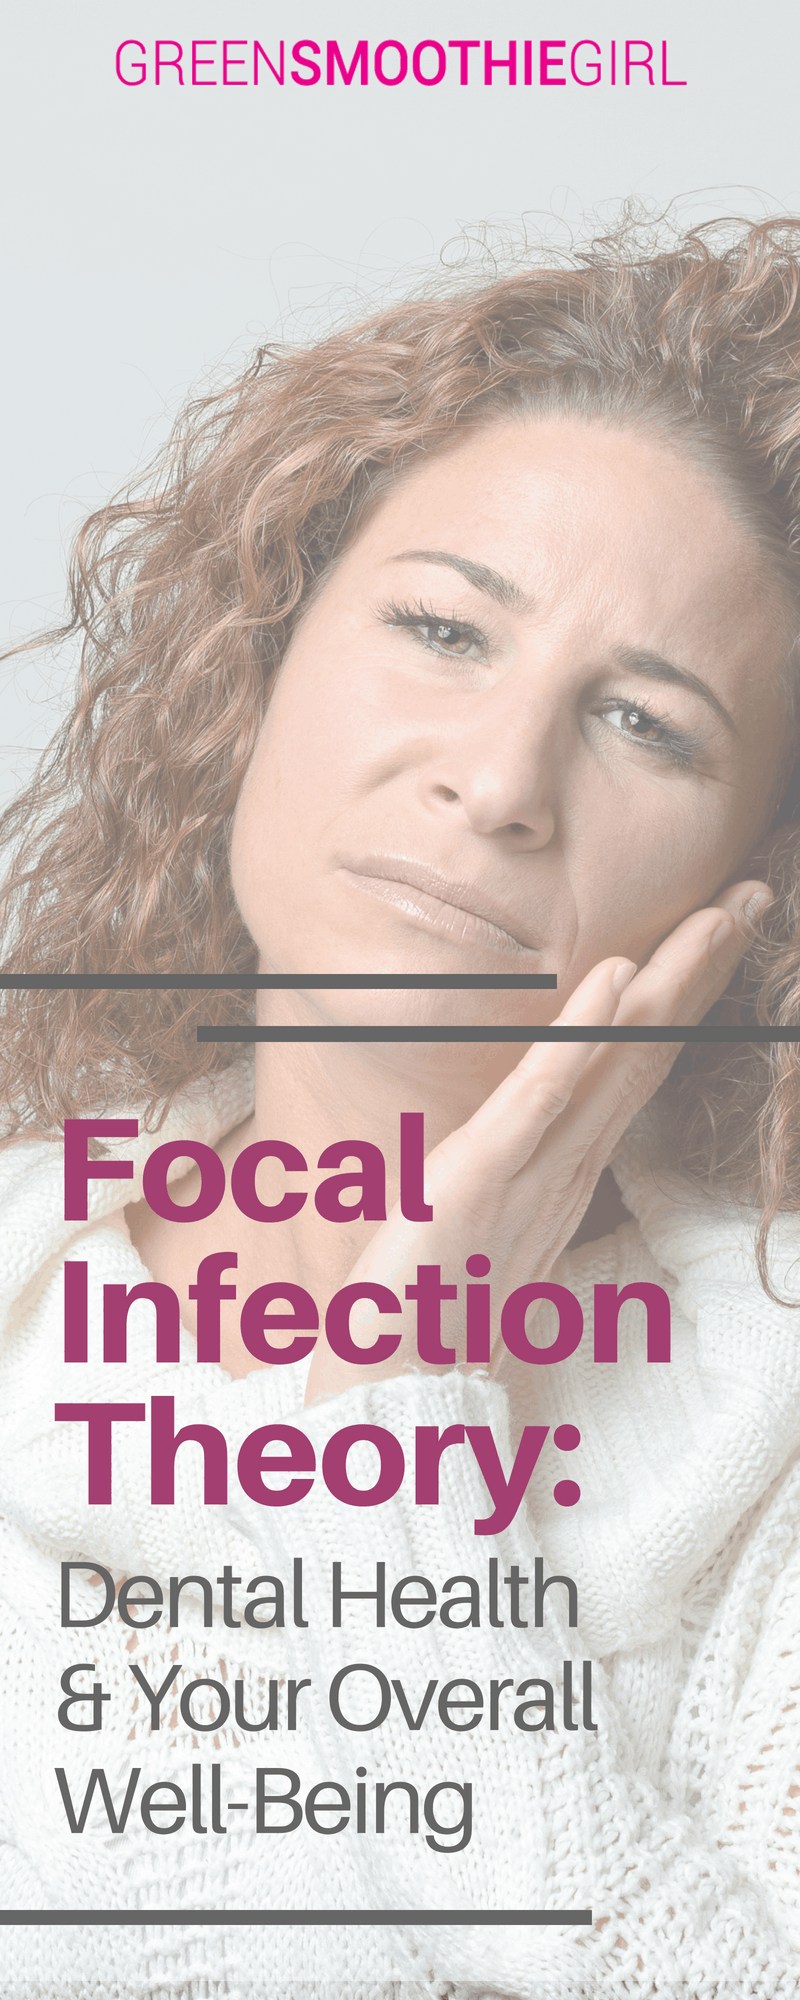 Focal Infection Theory | Green Smoothie Girl